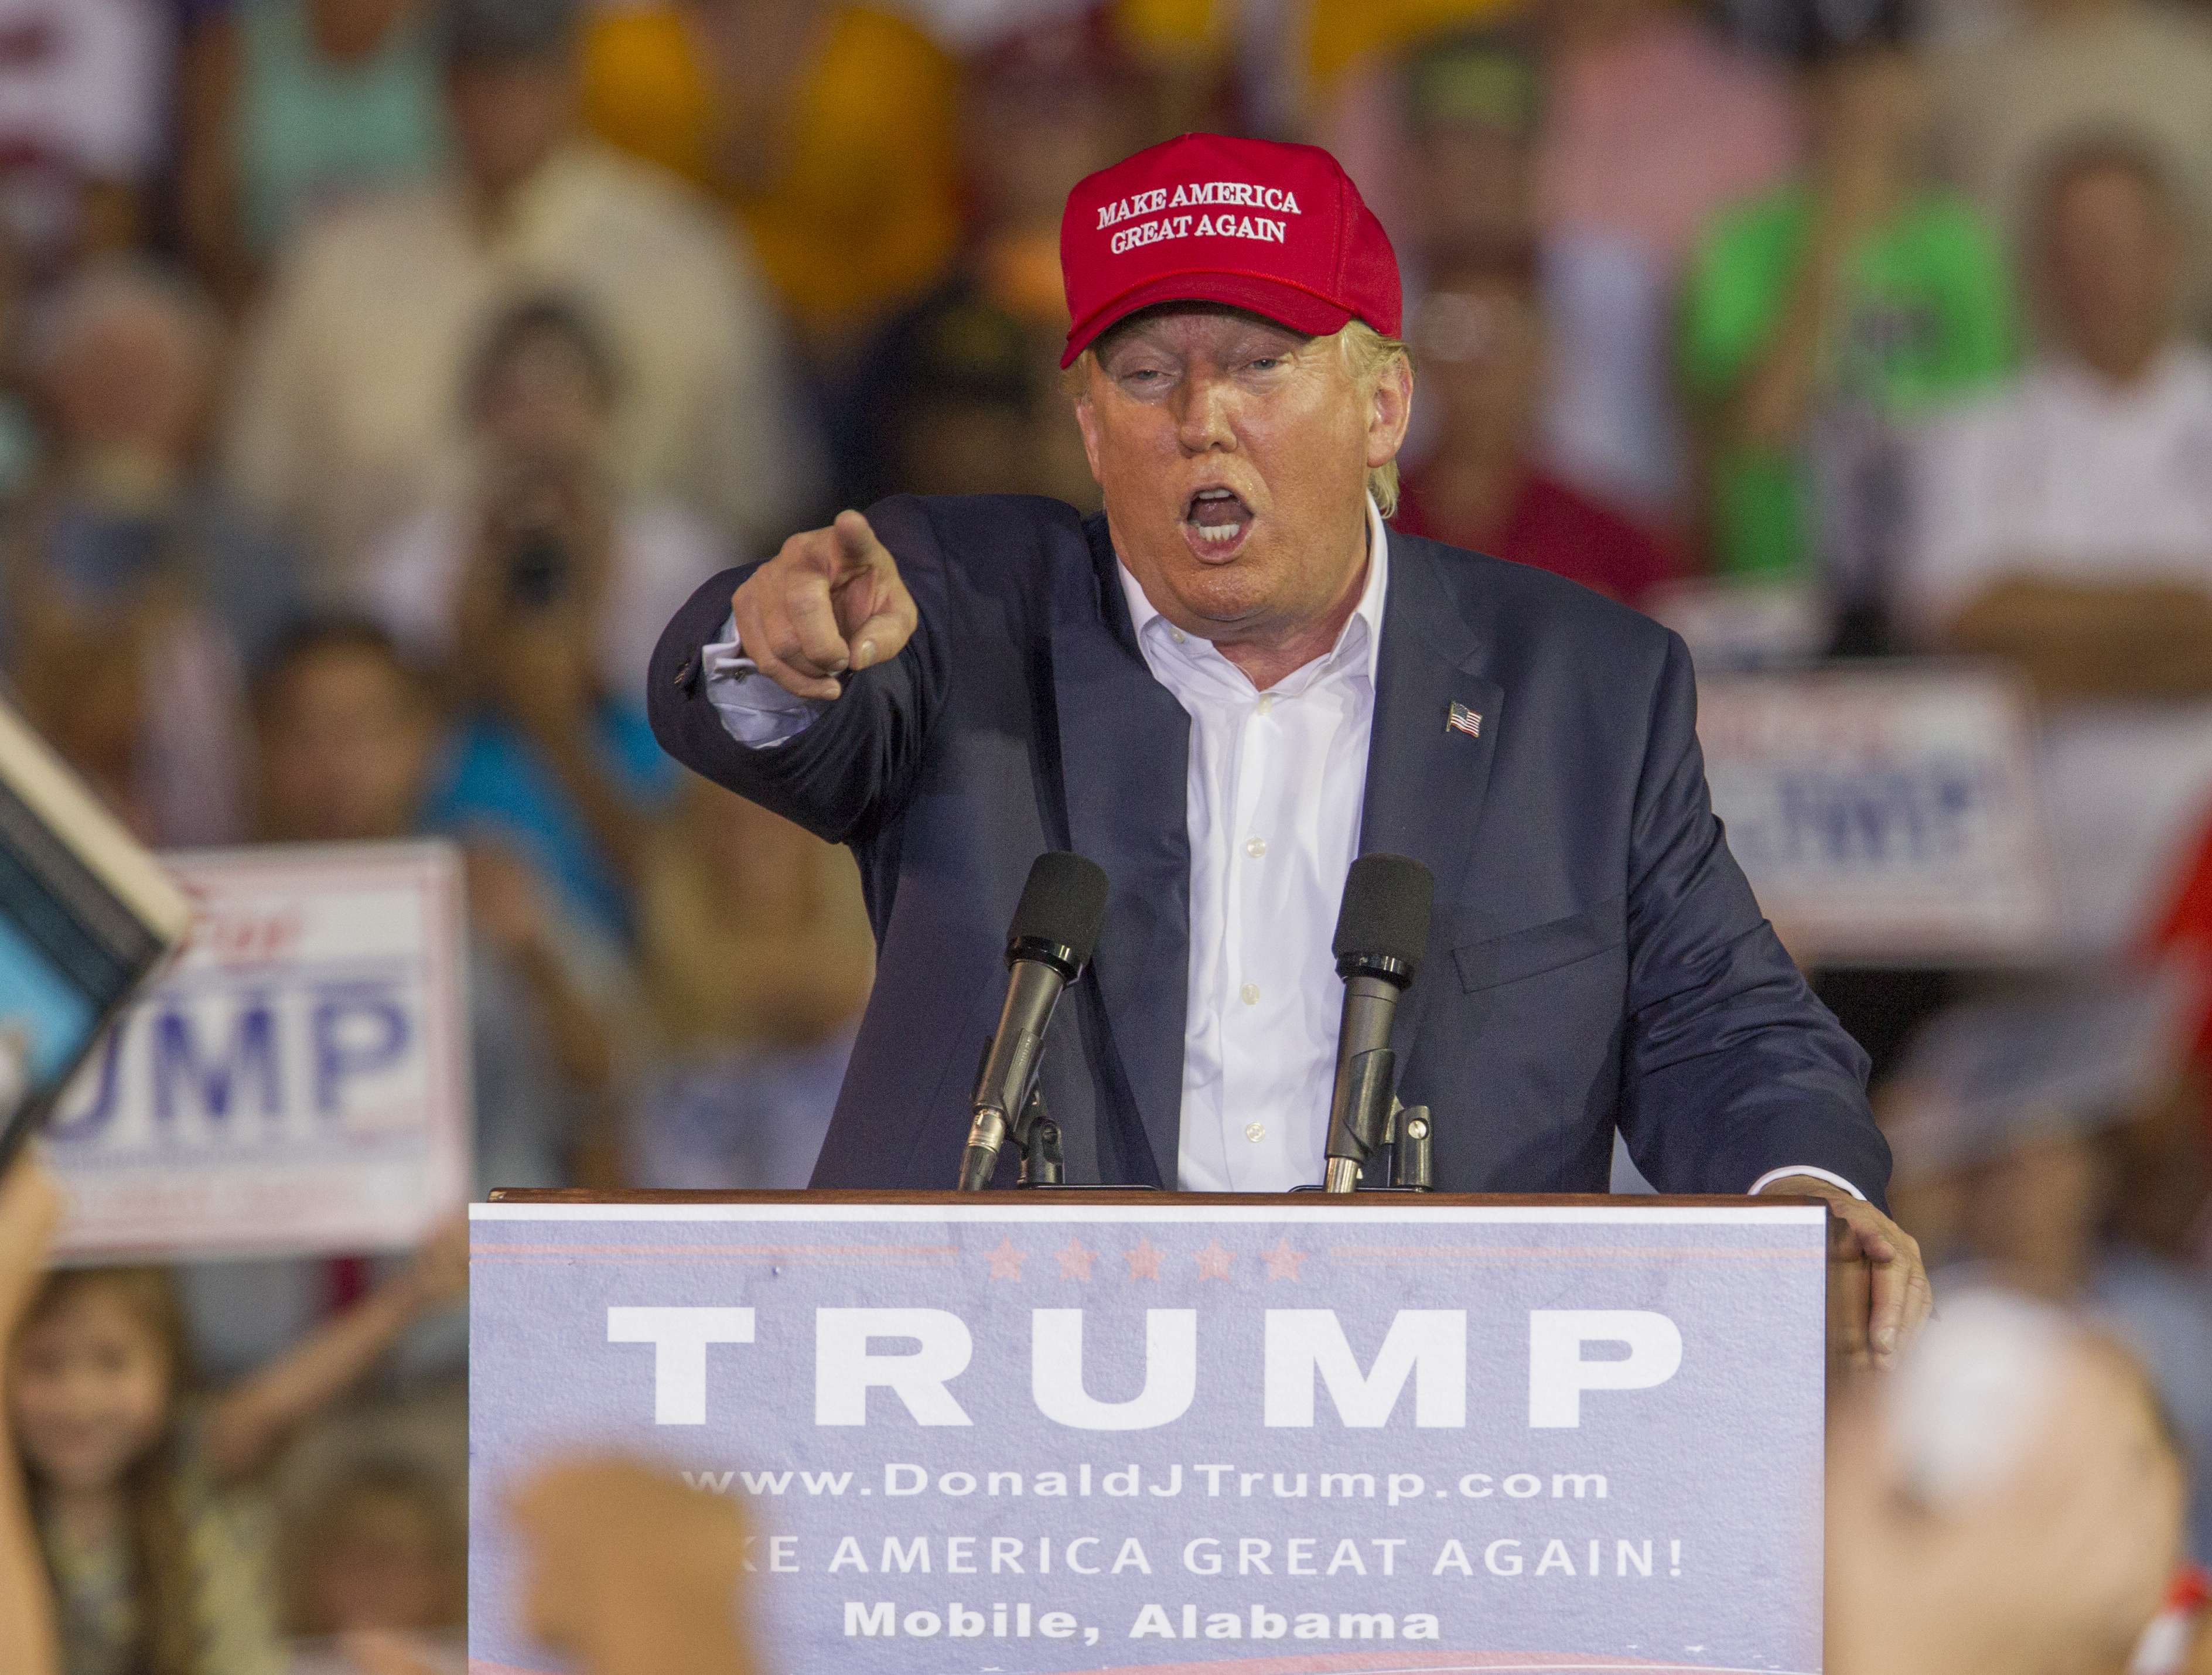 Republican presidential hopeful Donald Trump speaks at a rally.